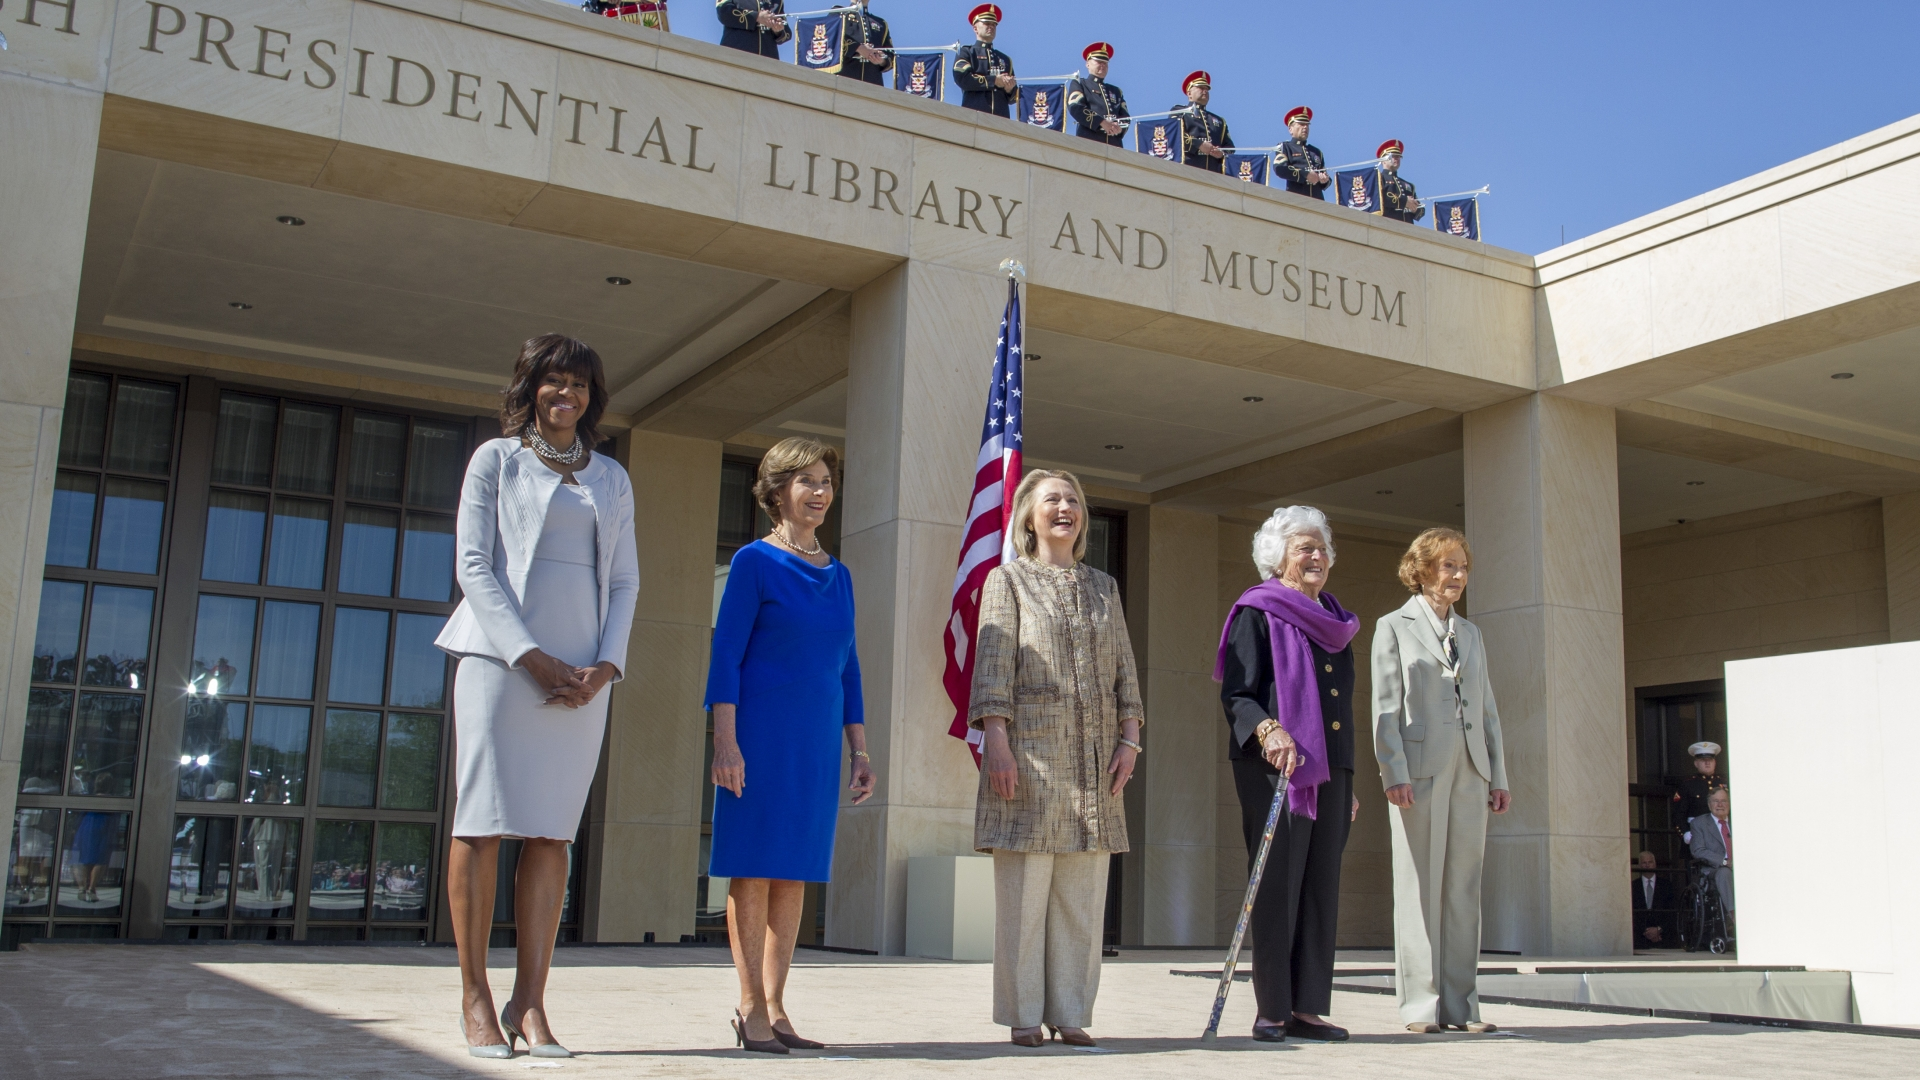 Former First Ladies Michelle Obama, Laura Bush, Hillary Clinton, Barbara Bush and Rosalynn Carter as they attend the dedication ceremony for the George W. Bush Presidential Center in Dallas. (Credit: Brooks Kraft LLC/Corbis/Getty Images)